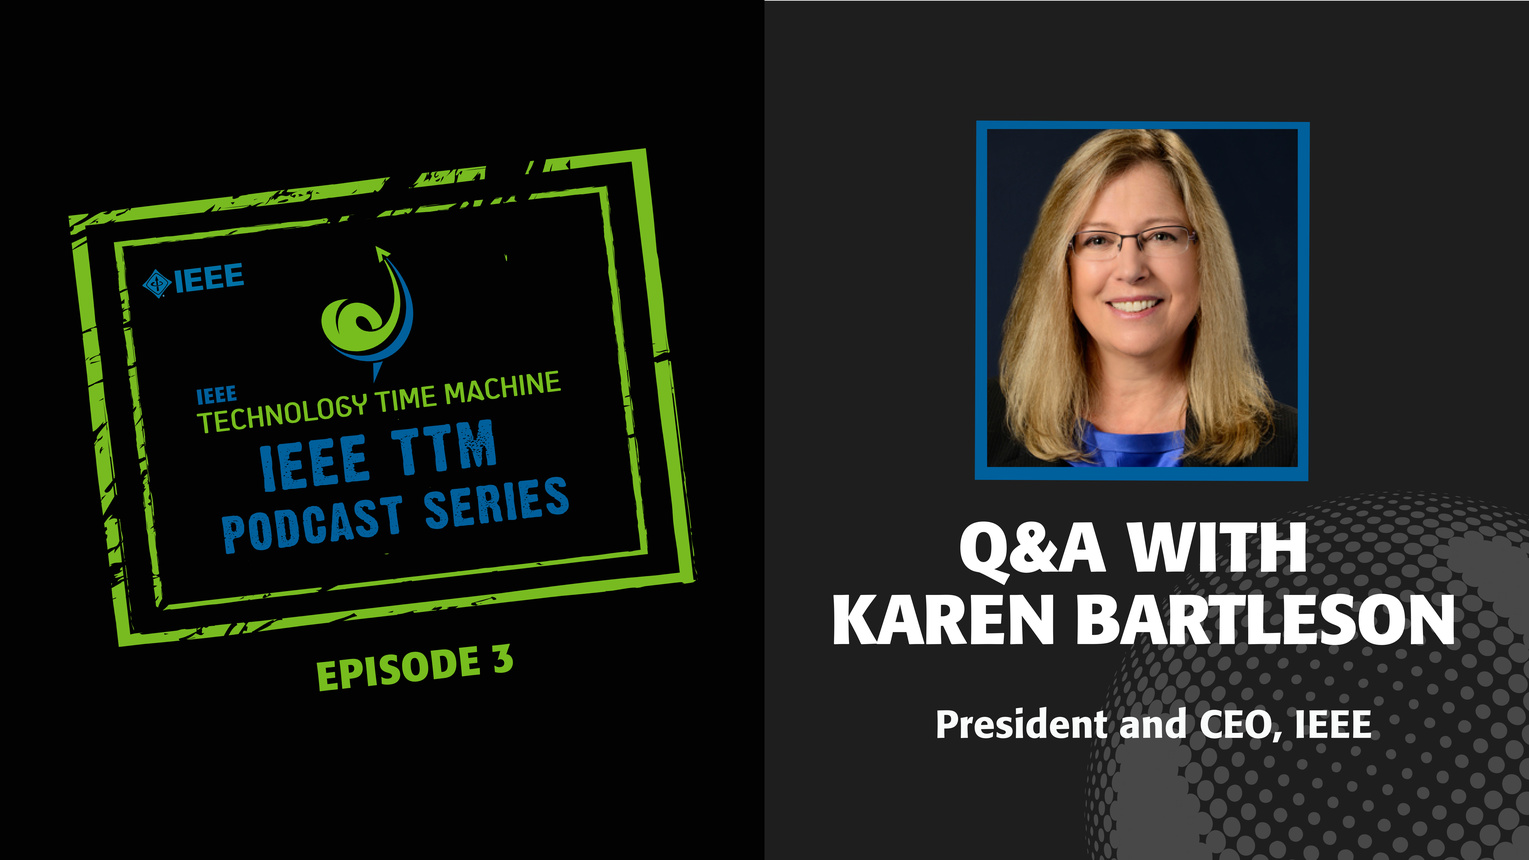 Q&A with Karen Bartleson: IEEE Technology Time Machine Podcast, Episode 3